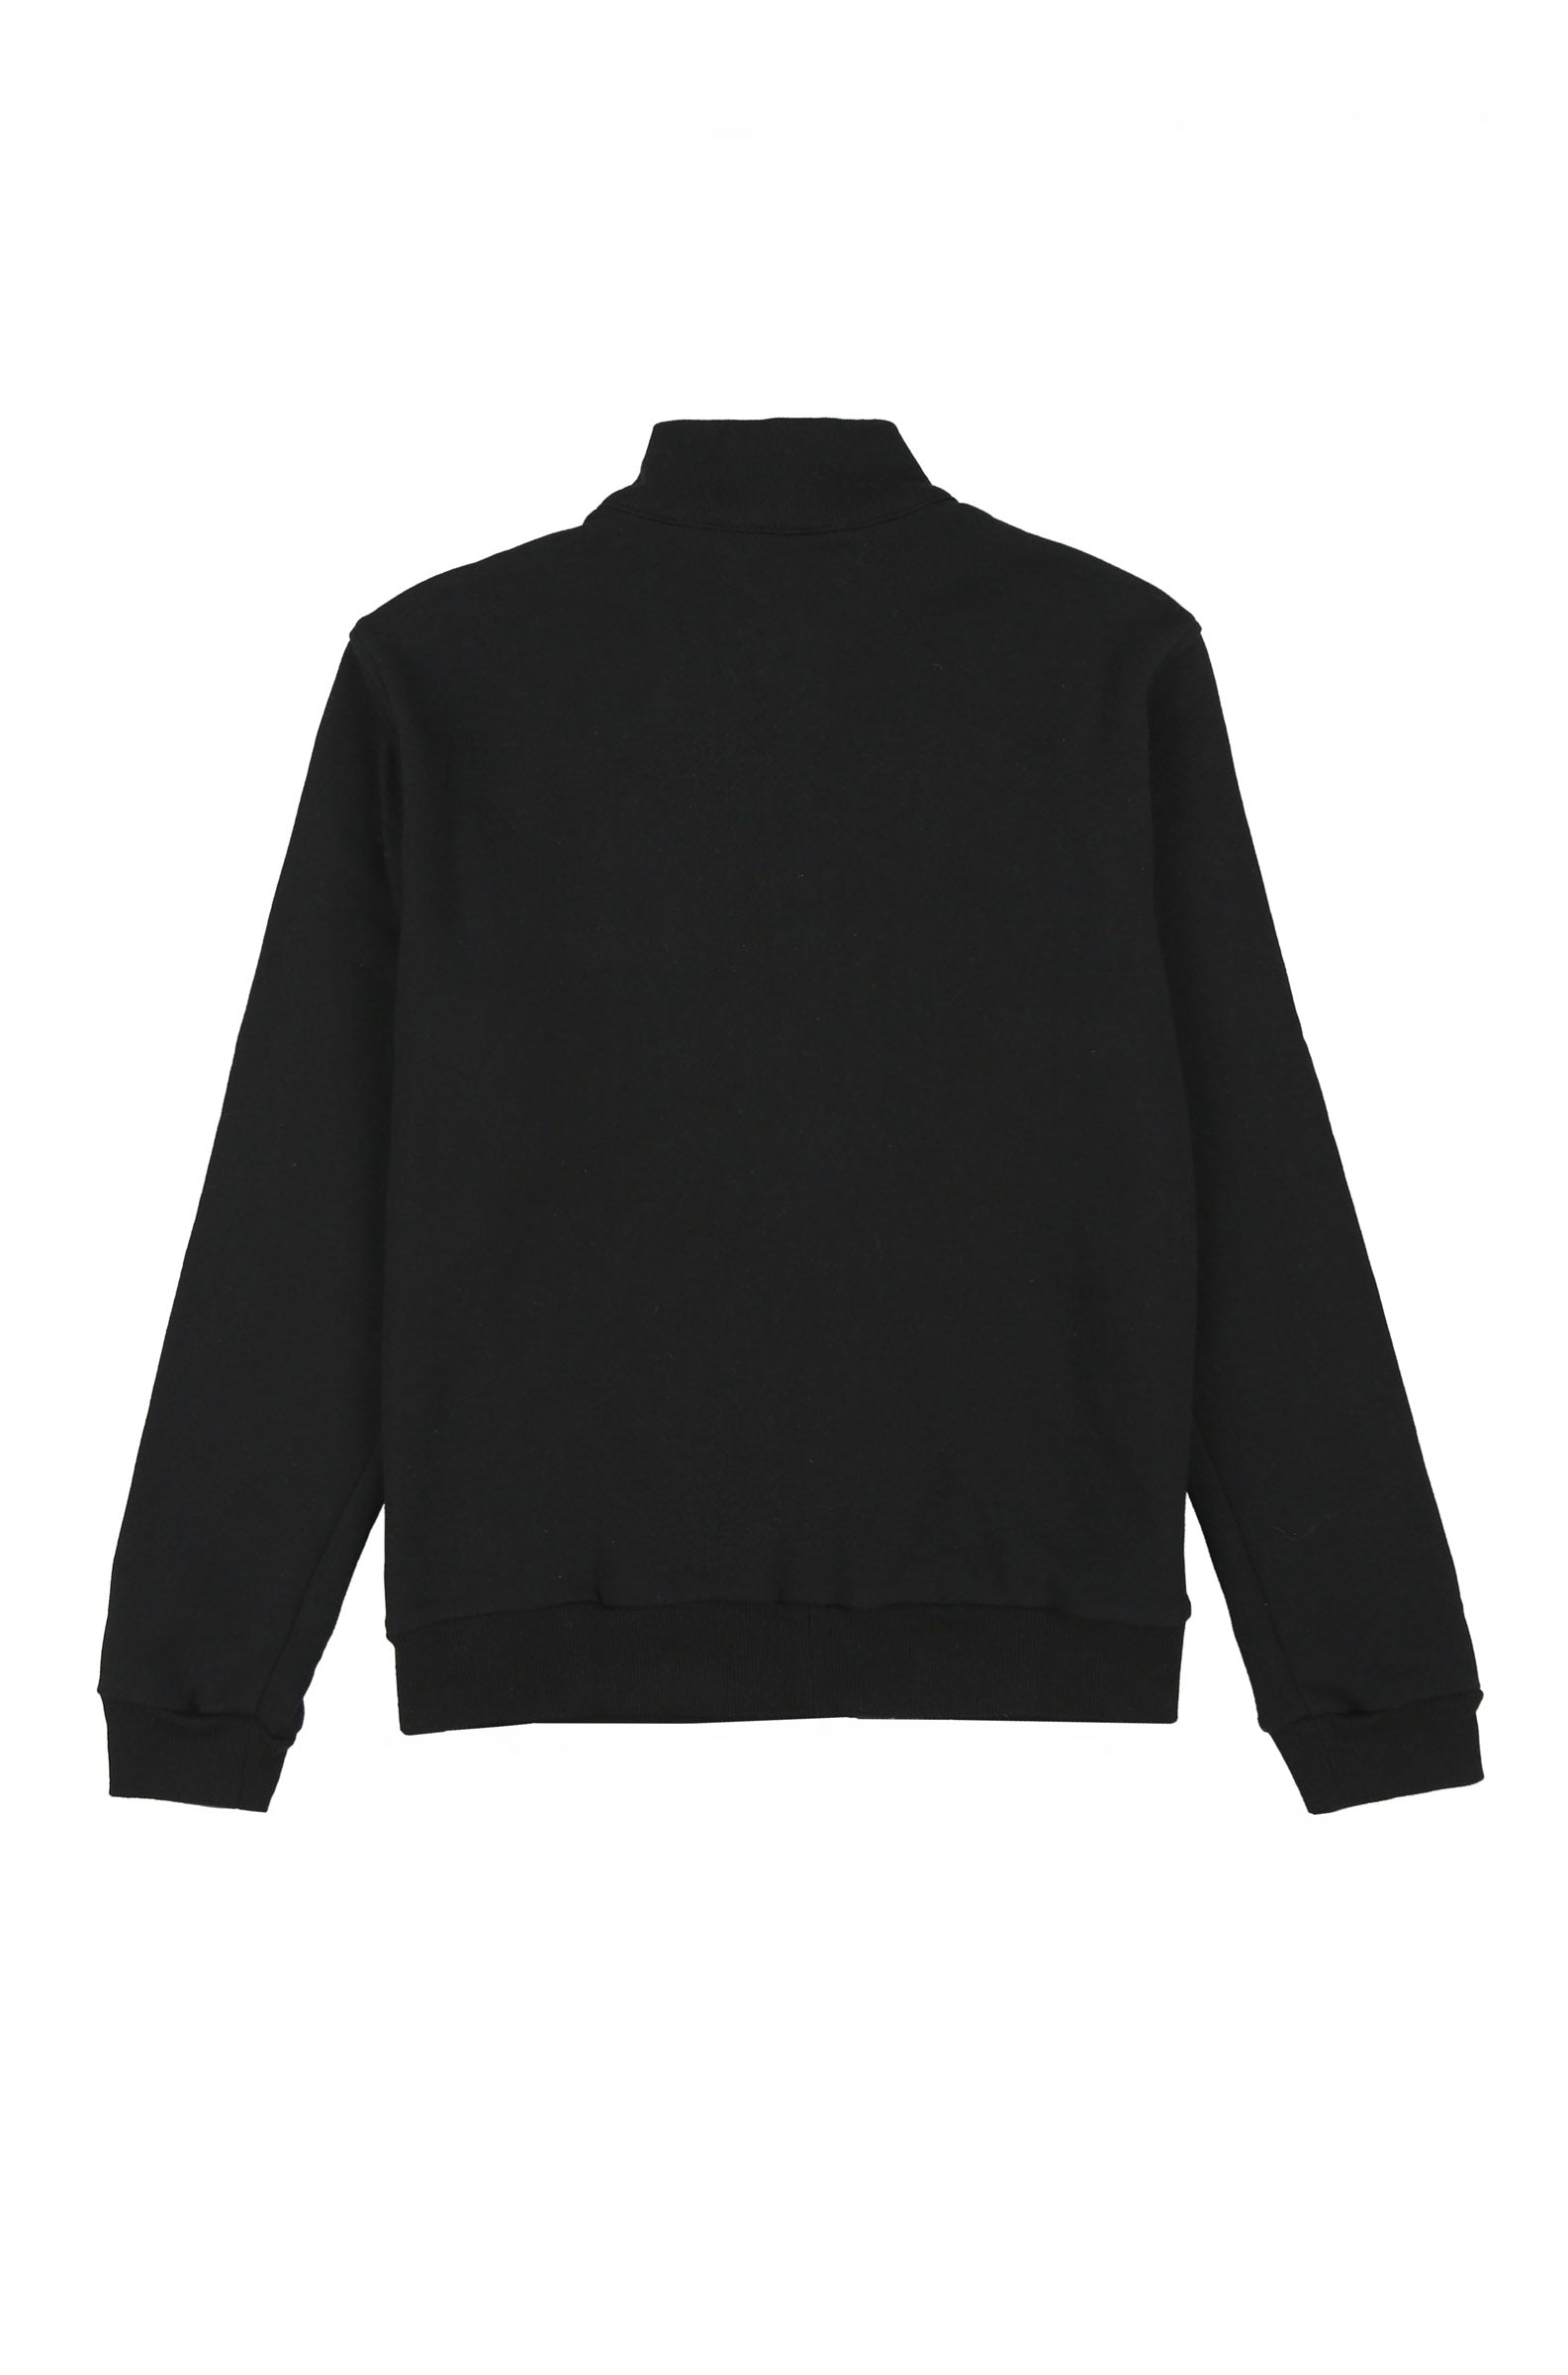 JOMO DOUBLE TRACK JACKET (BLACK)